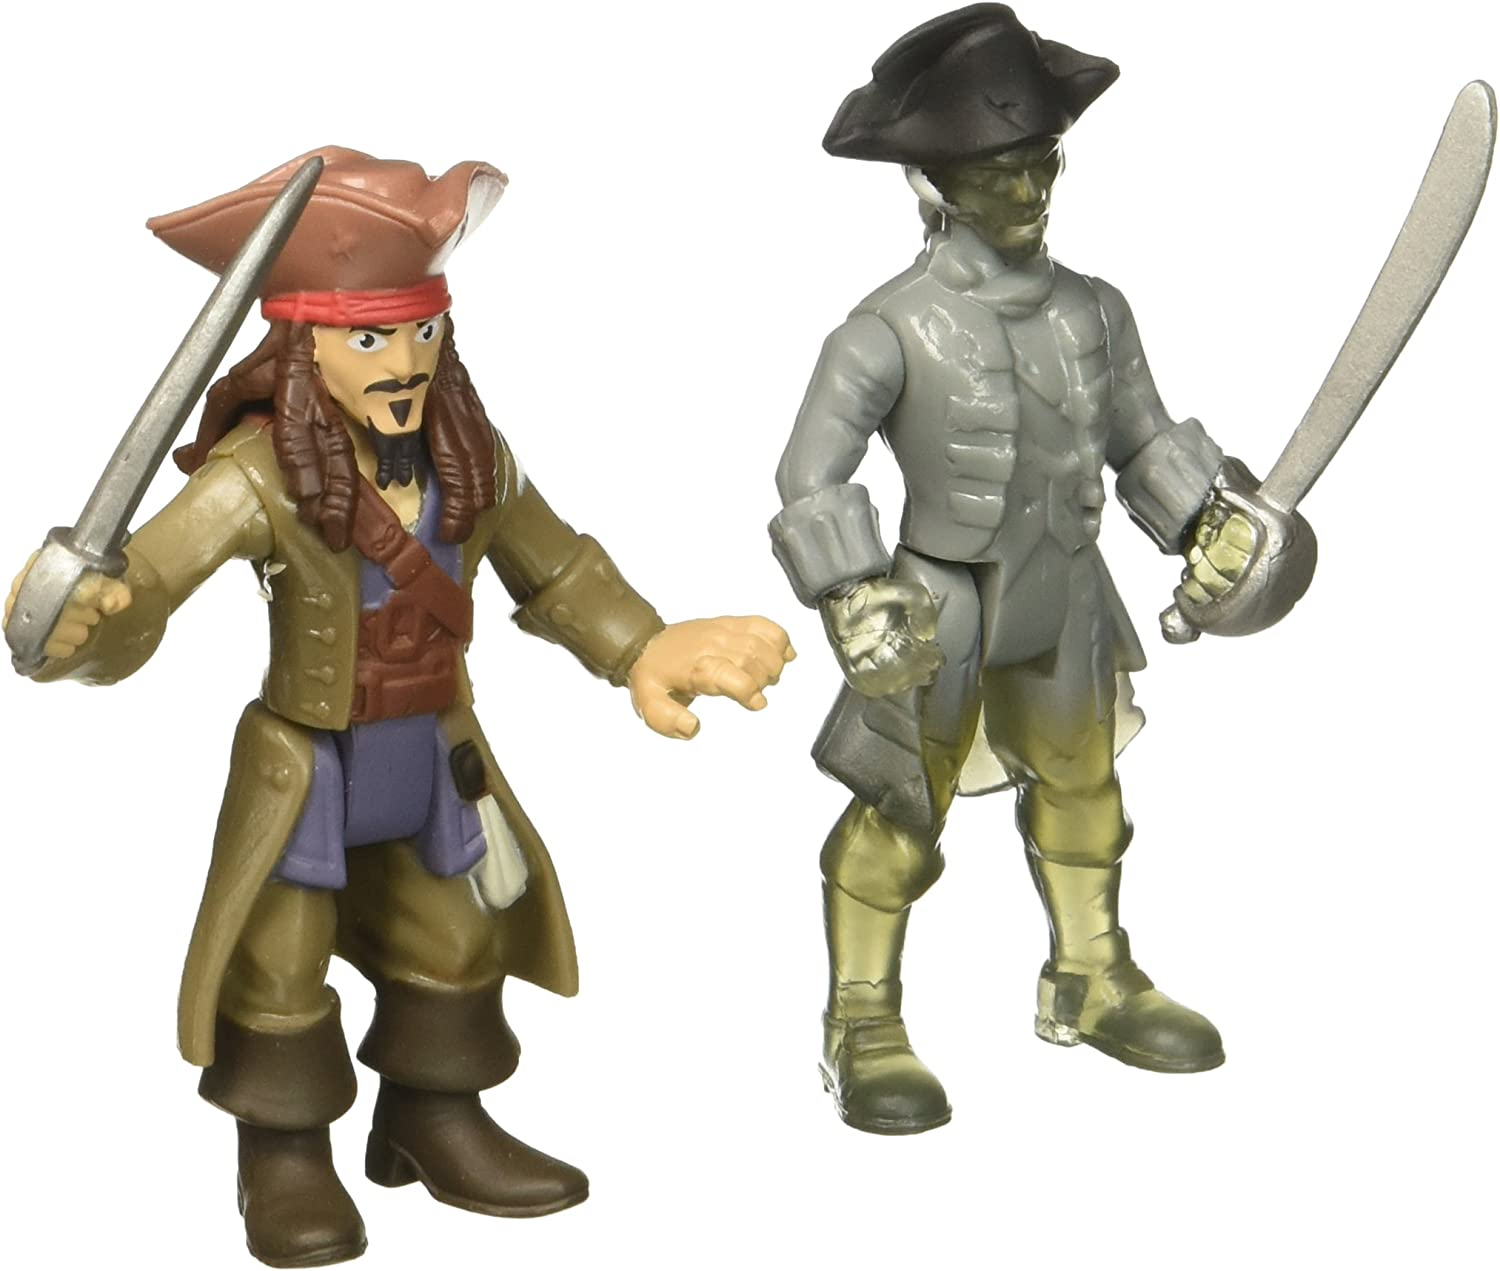 Pirates of the Caribbean: Dead Men Tell No Tales - Jack Sparrow vs. Ghost Crewman - Action Figure 2-Pack